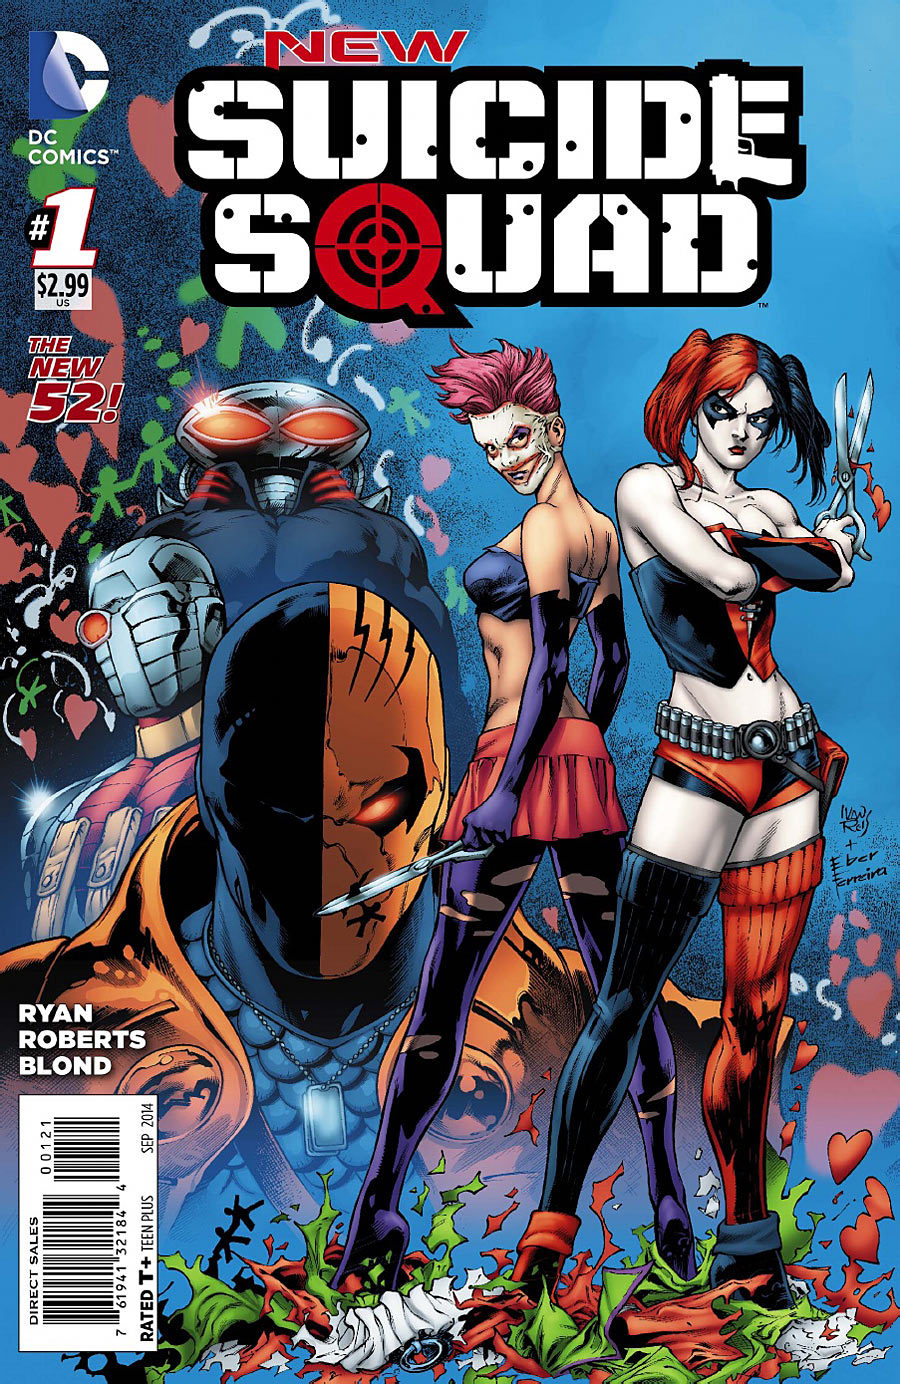 http://vignette4.wikia.nocookie.net/marvel_dc/images/1/16/New_Suicide_Squad_Vol_1_1_Variant.jpg/revision/latest?cb=20140718203951